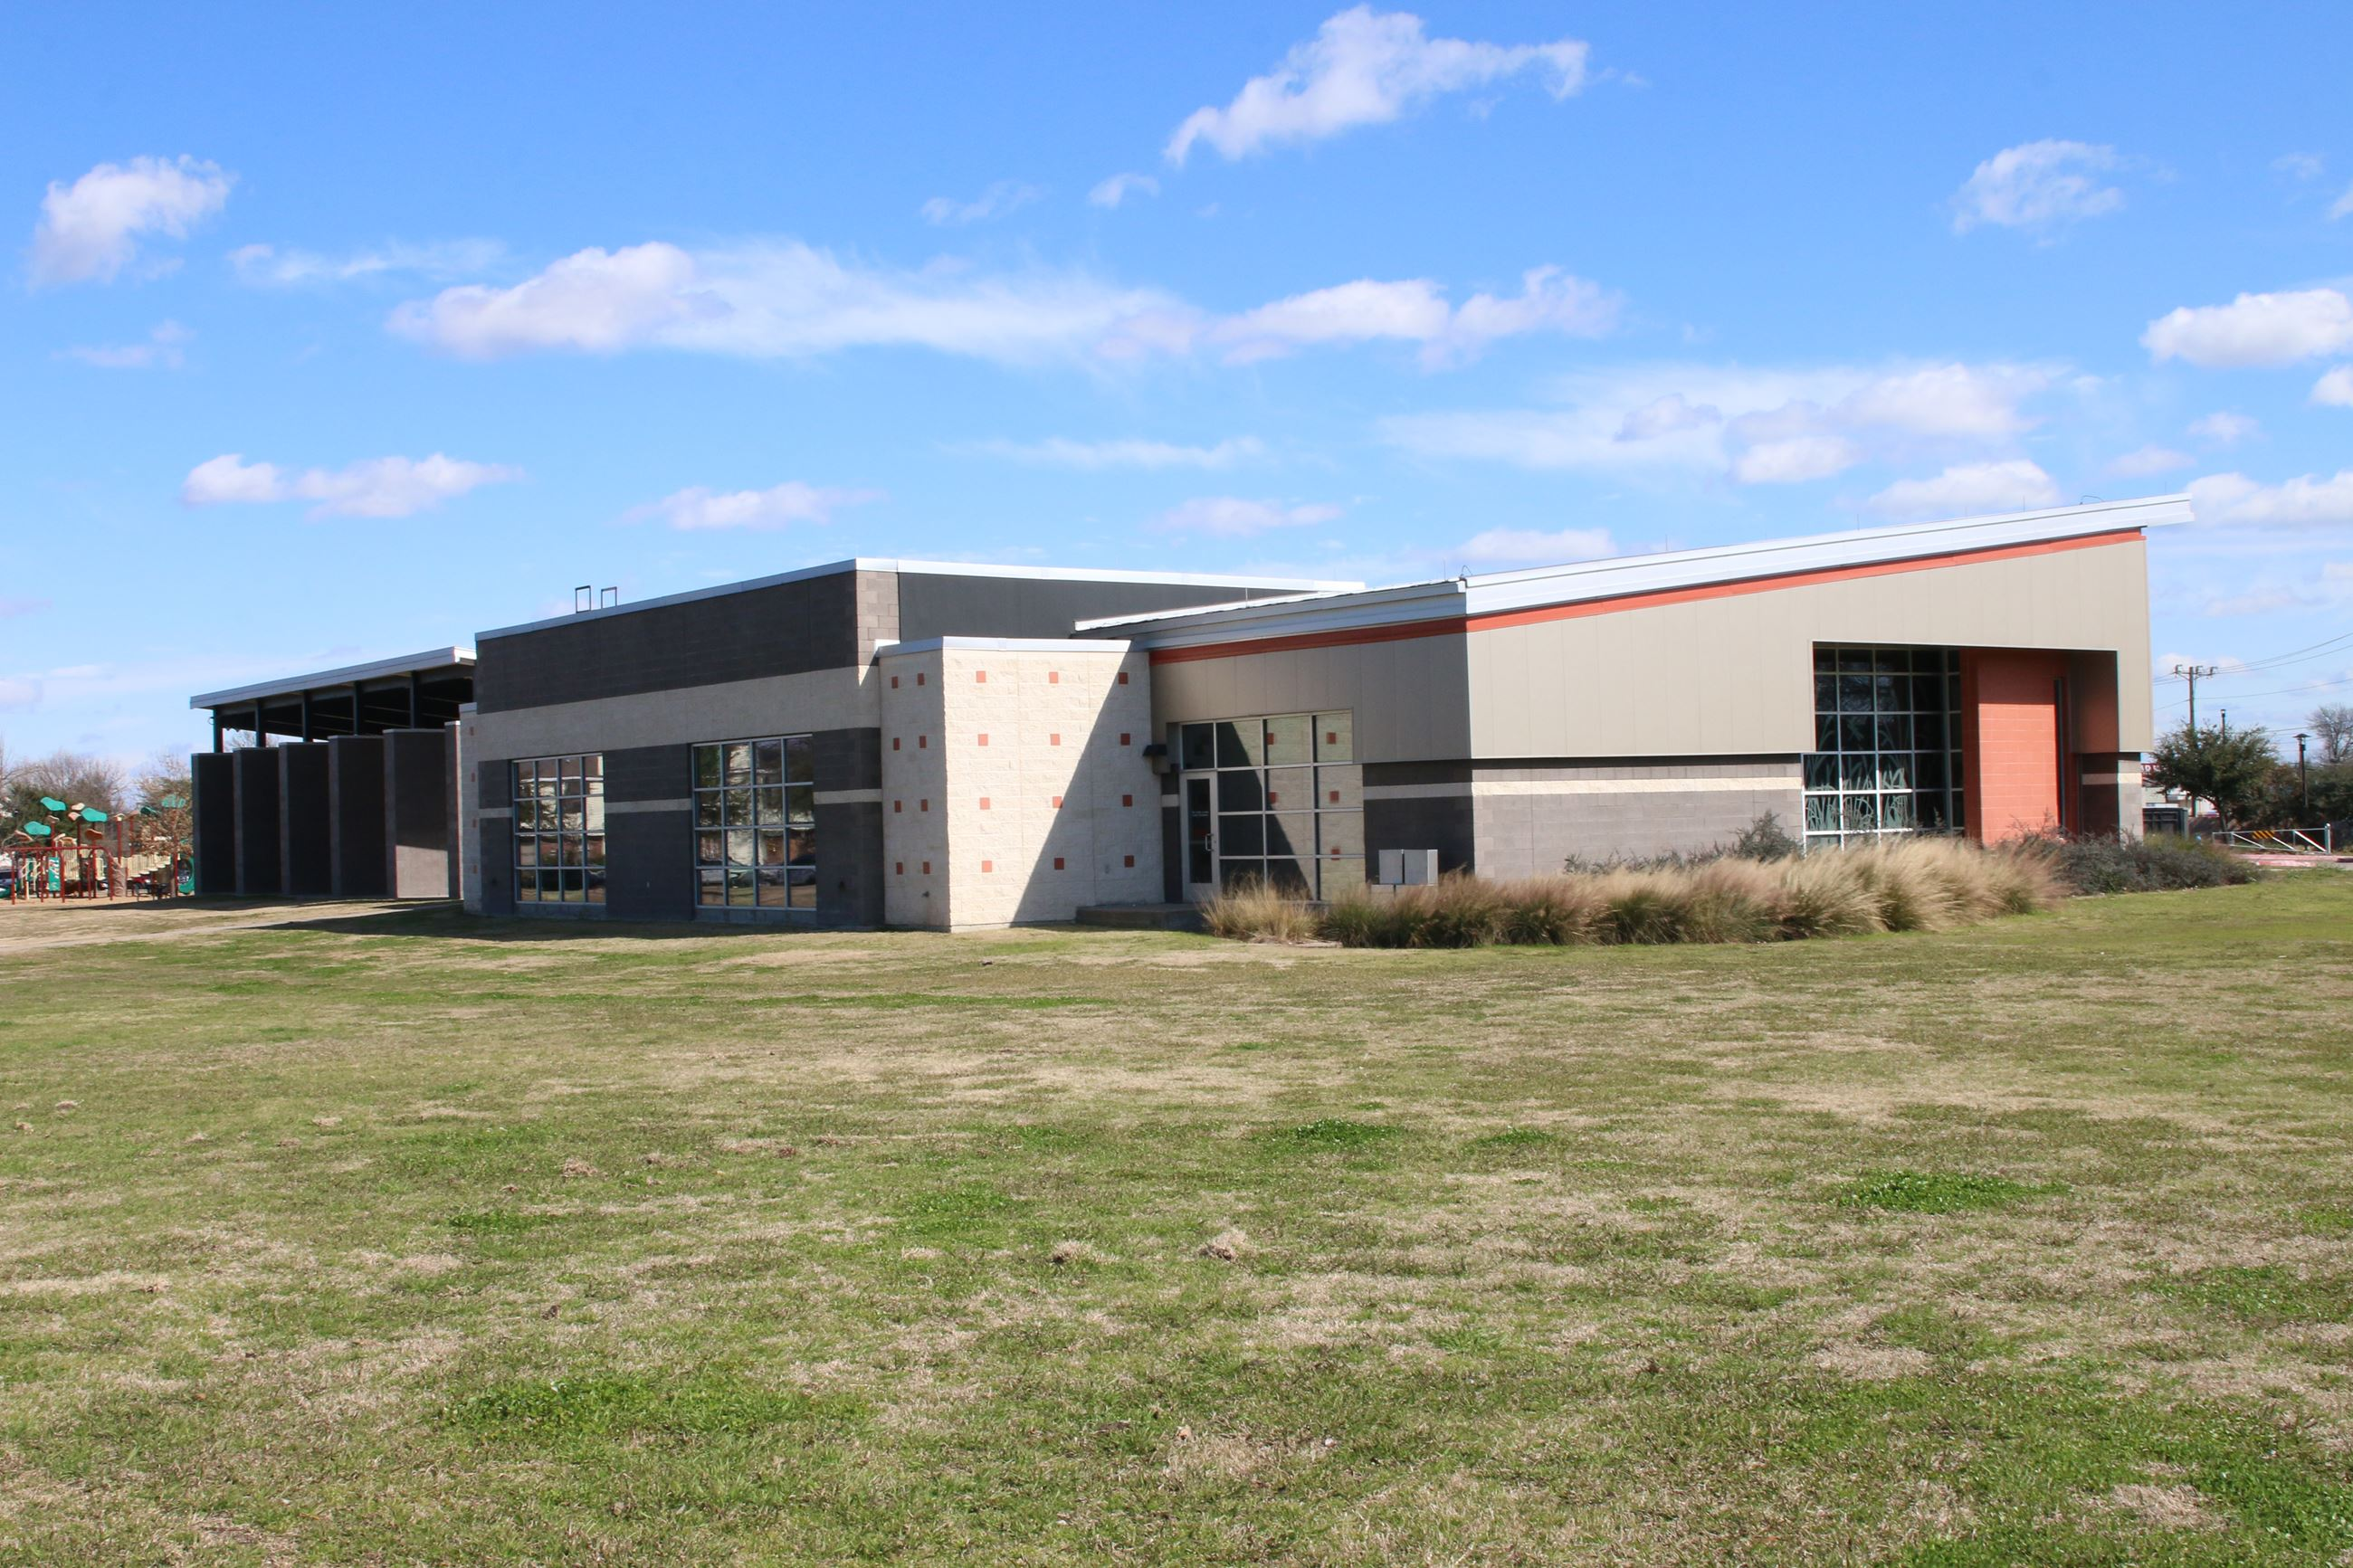 Hollabough Recreation Center